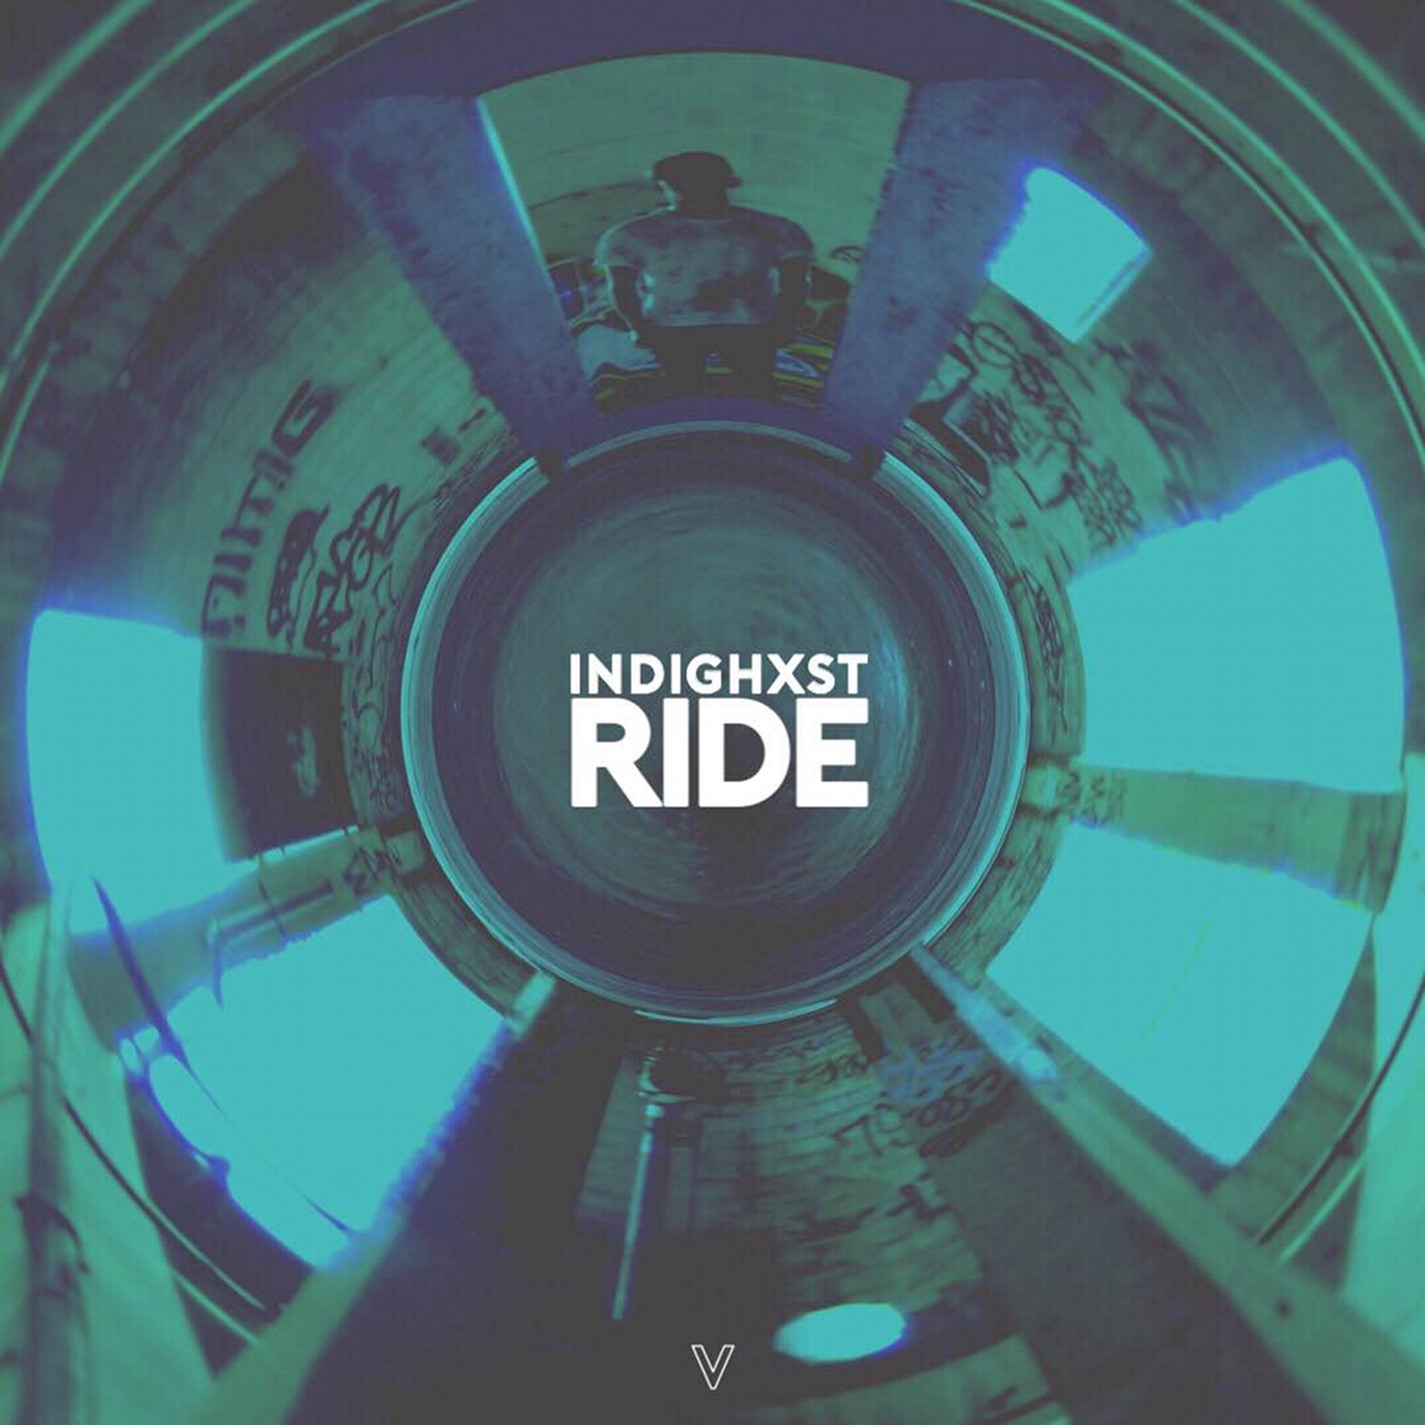 Indighxst - Ride [single] (2016)